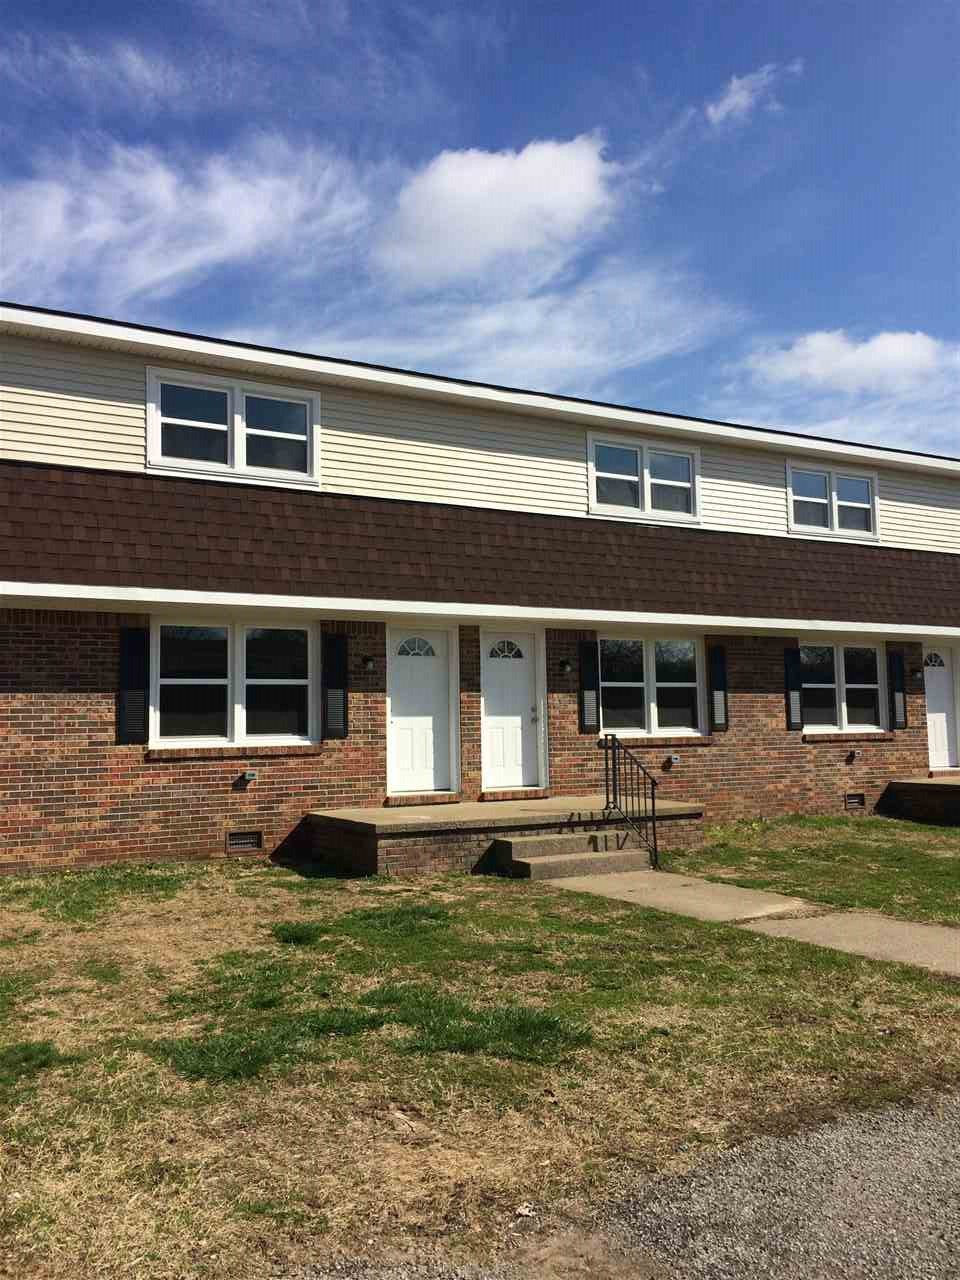 Rental Homes for Rent, ListingId:32536190, location: 212 Glenn St Paducah 42003